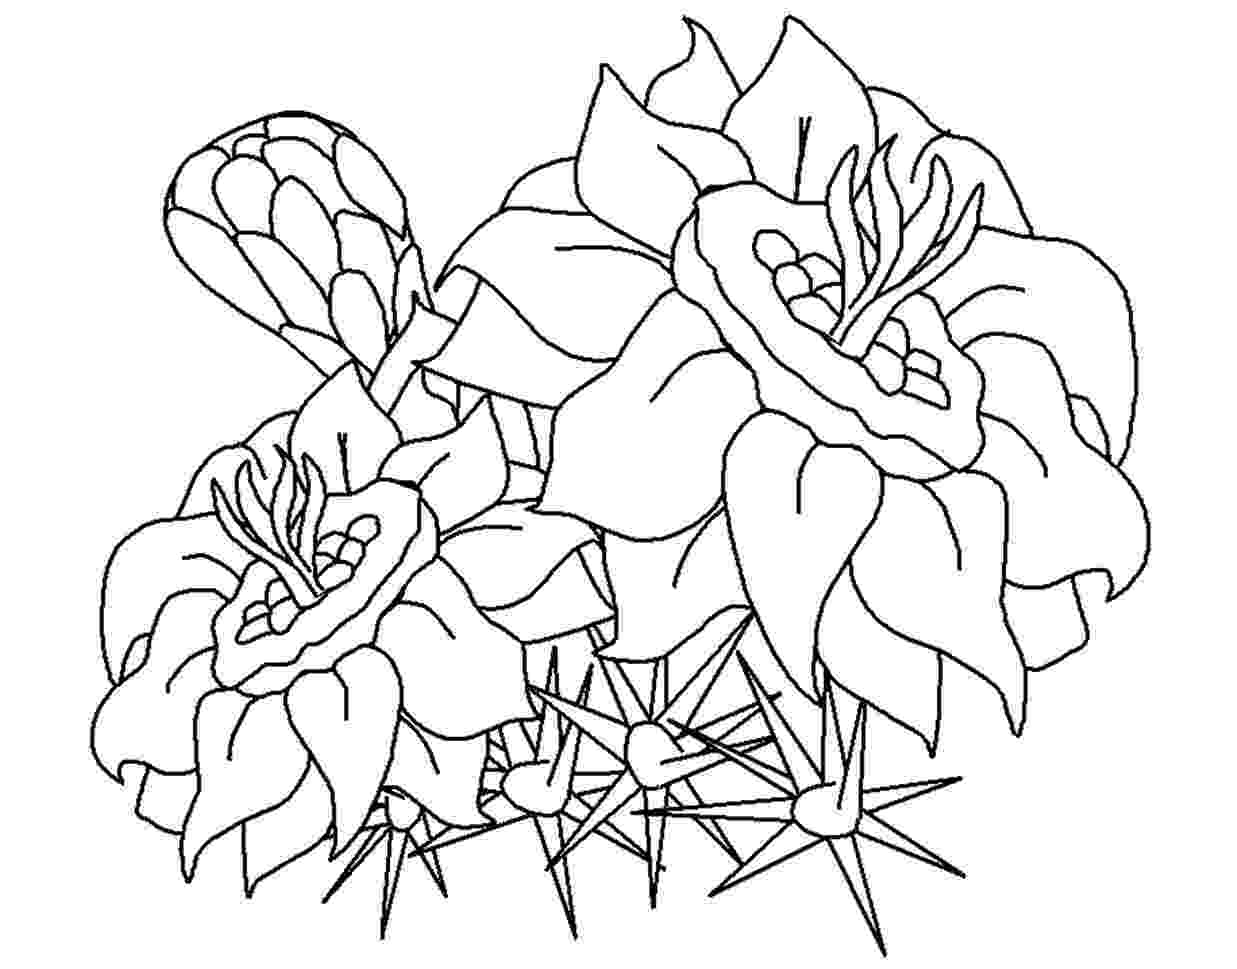 flower images to color 10 flower coloring sheets for girls and boys all esl images color flower to